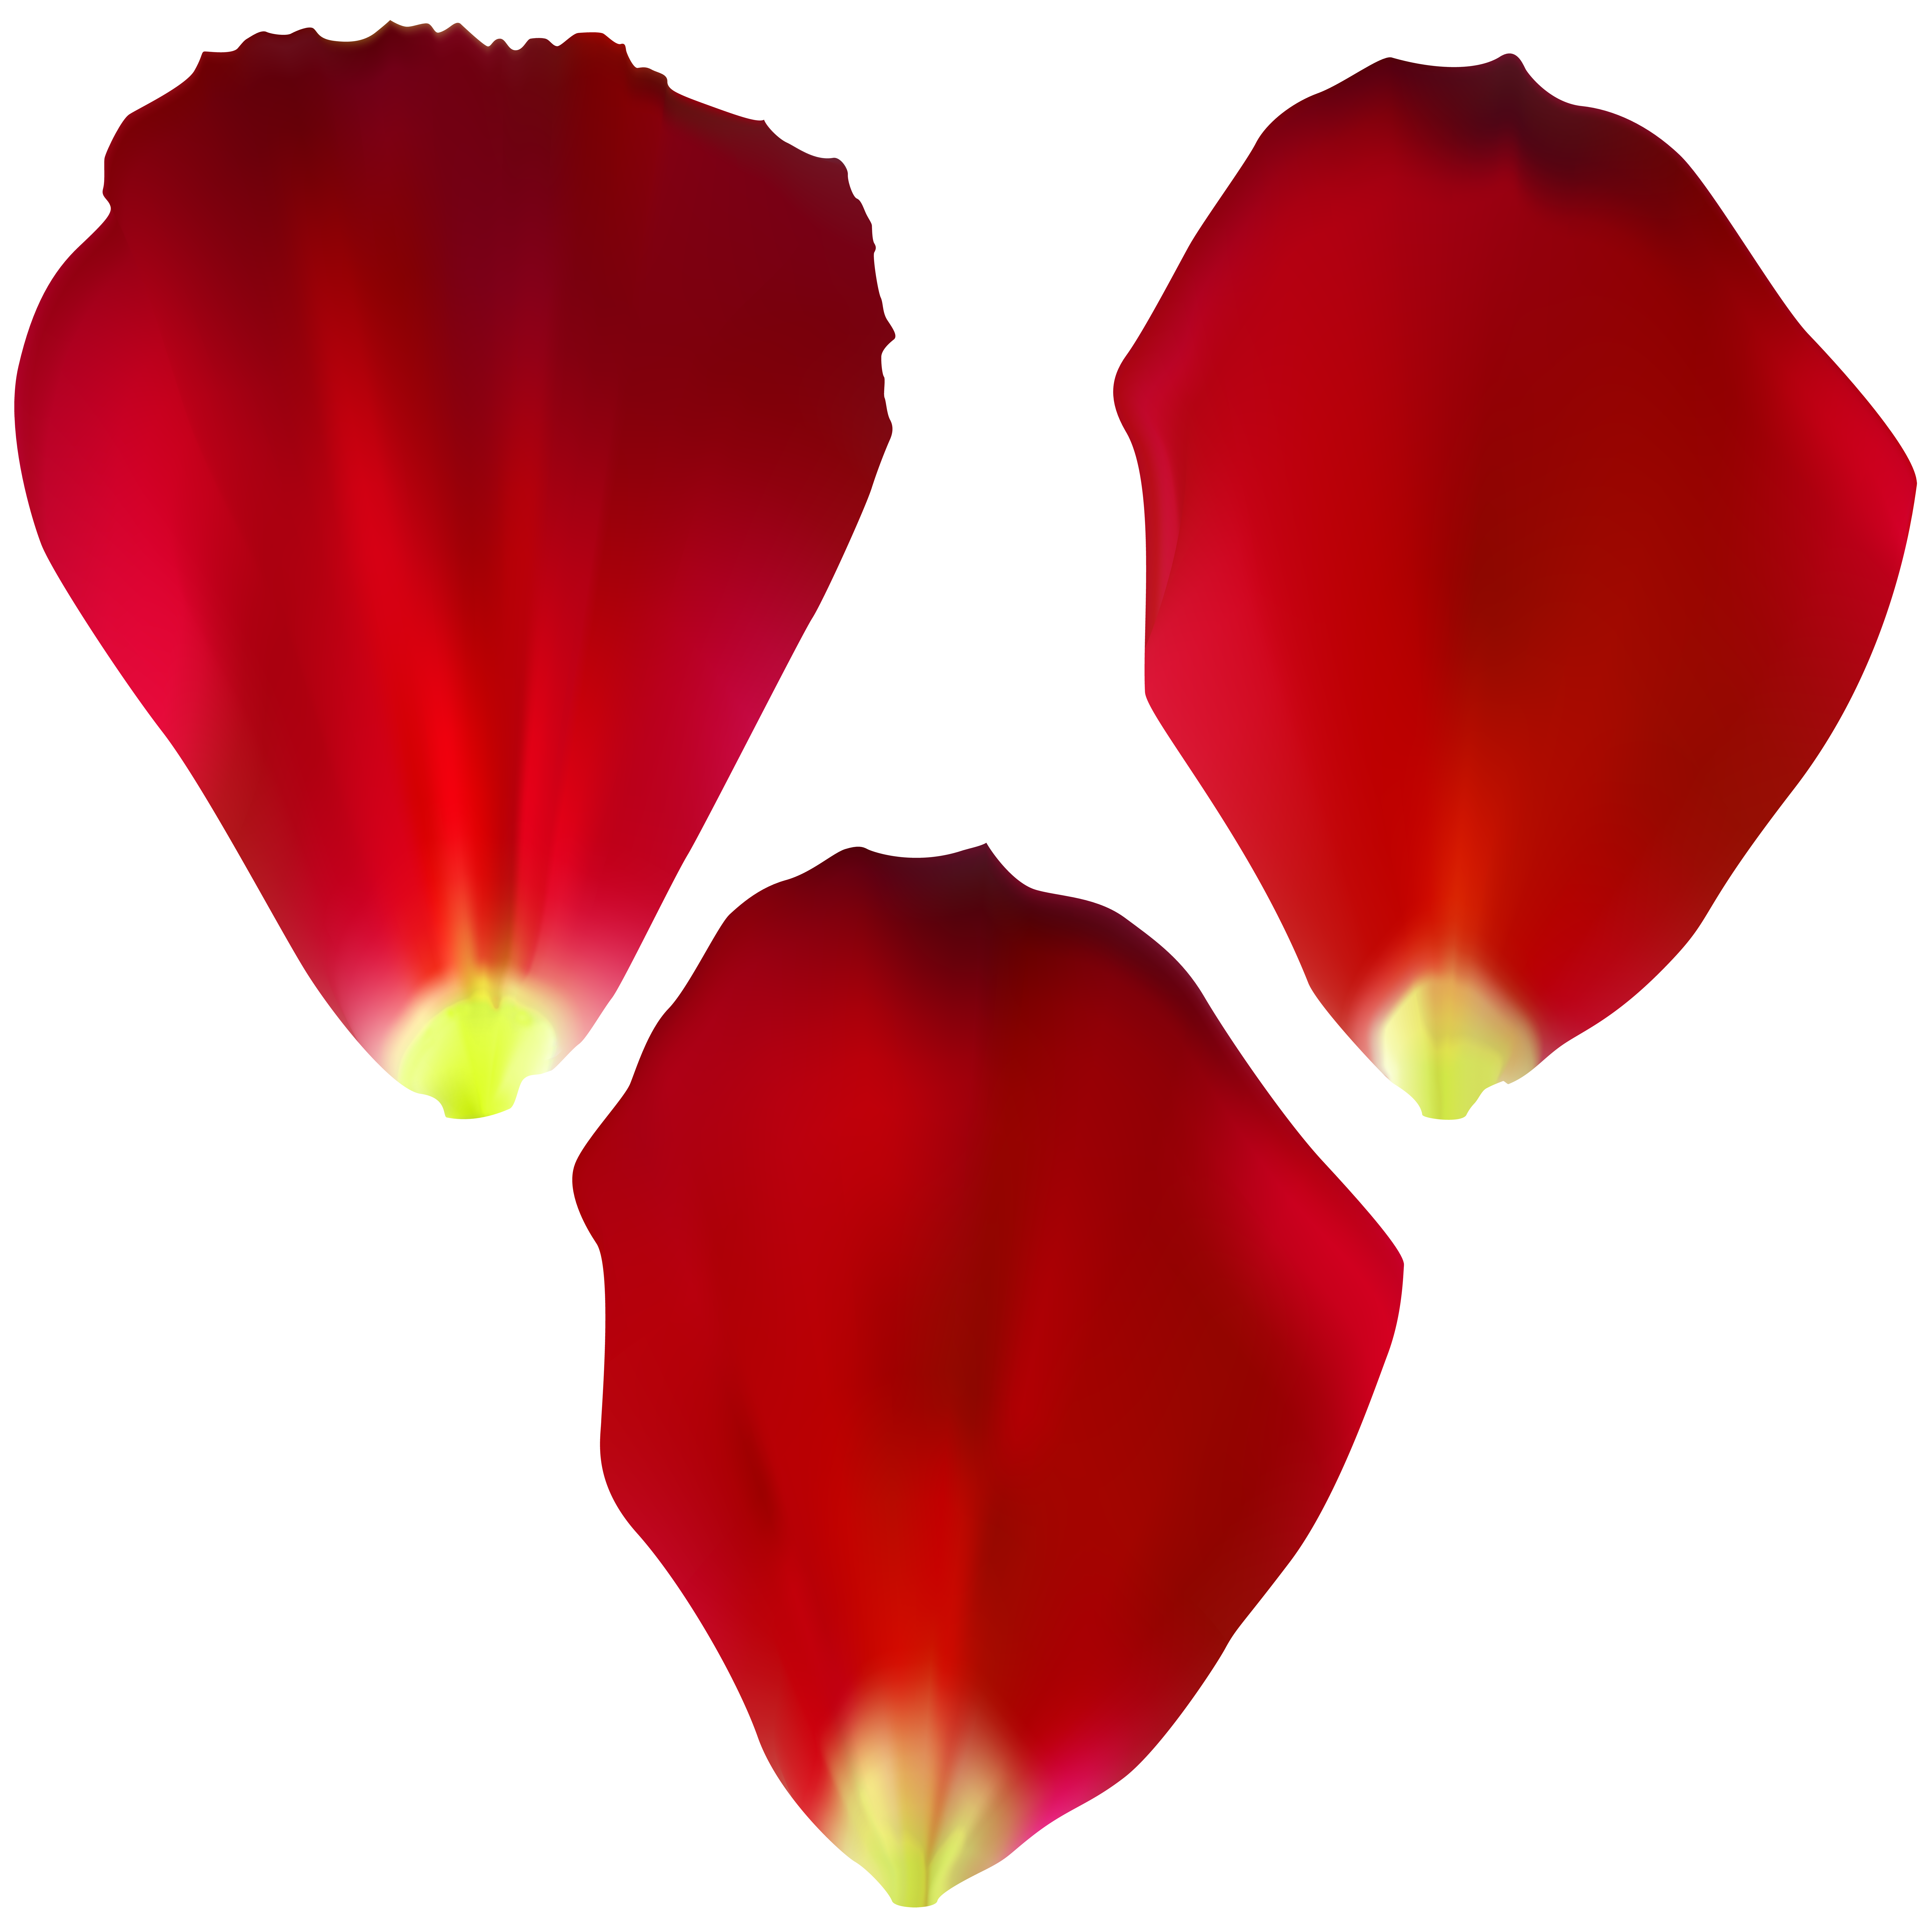 Rose computer icons painting. Flower petals clipart